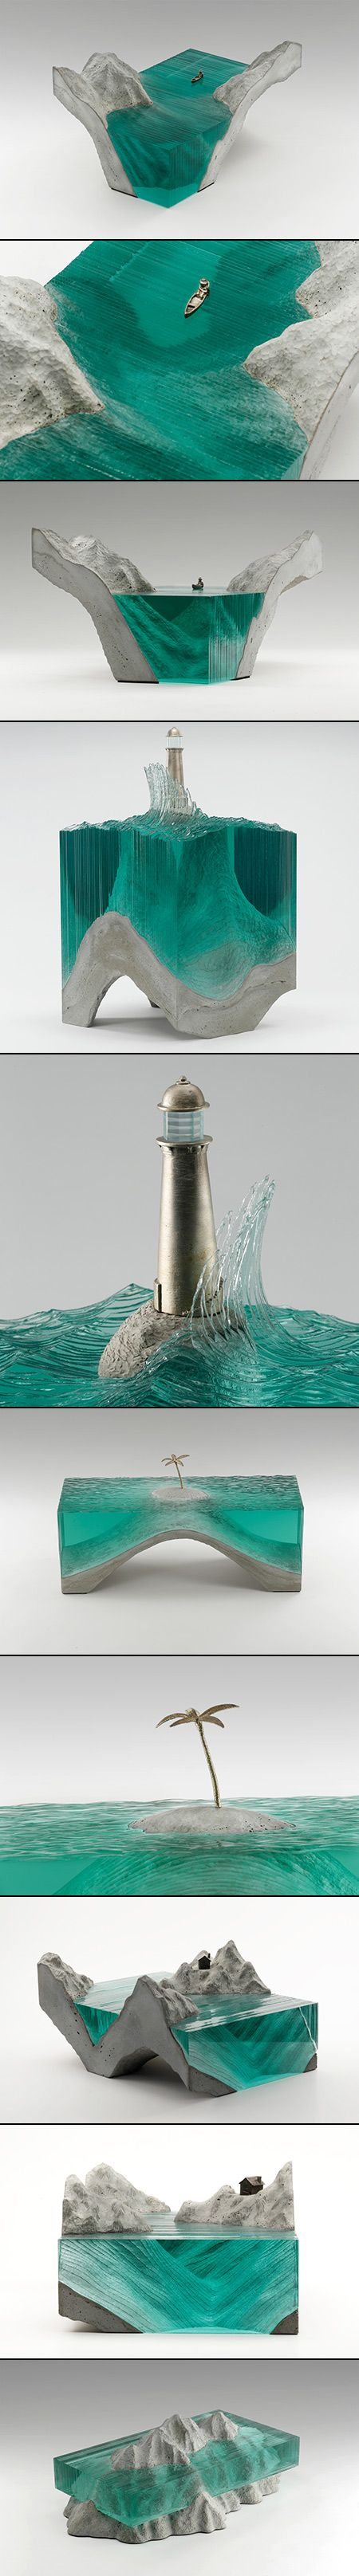 Sculptor Ben Young  just unveiled a collection of new glass sculptures prior to the Sculpture Objects Functional Art + Design (SOFA) Fair in Chicago next month. Young works with laminated clear float glass atop cast concrete bases to create cross-section views of ocean waves that look somewhat like patterns in topographical charts.